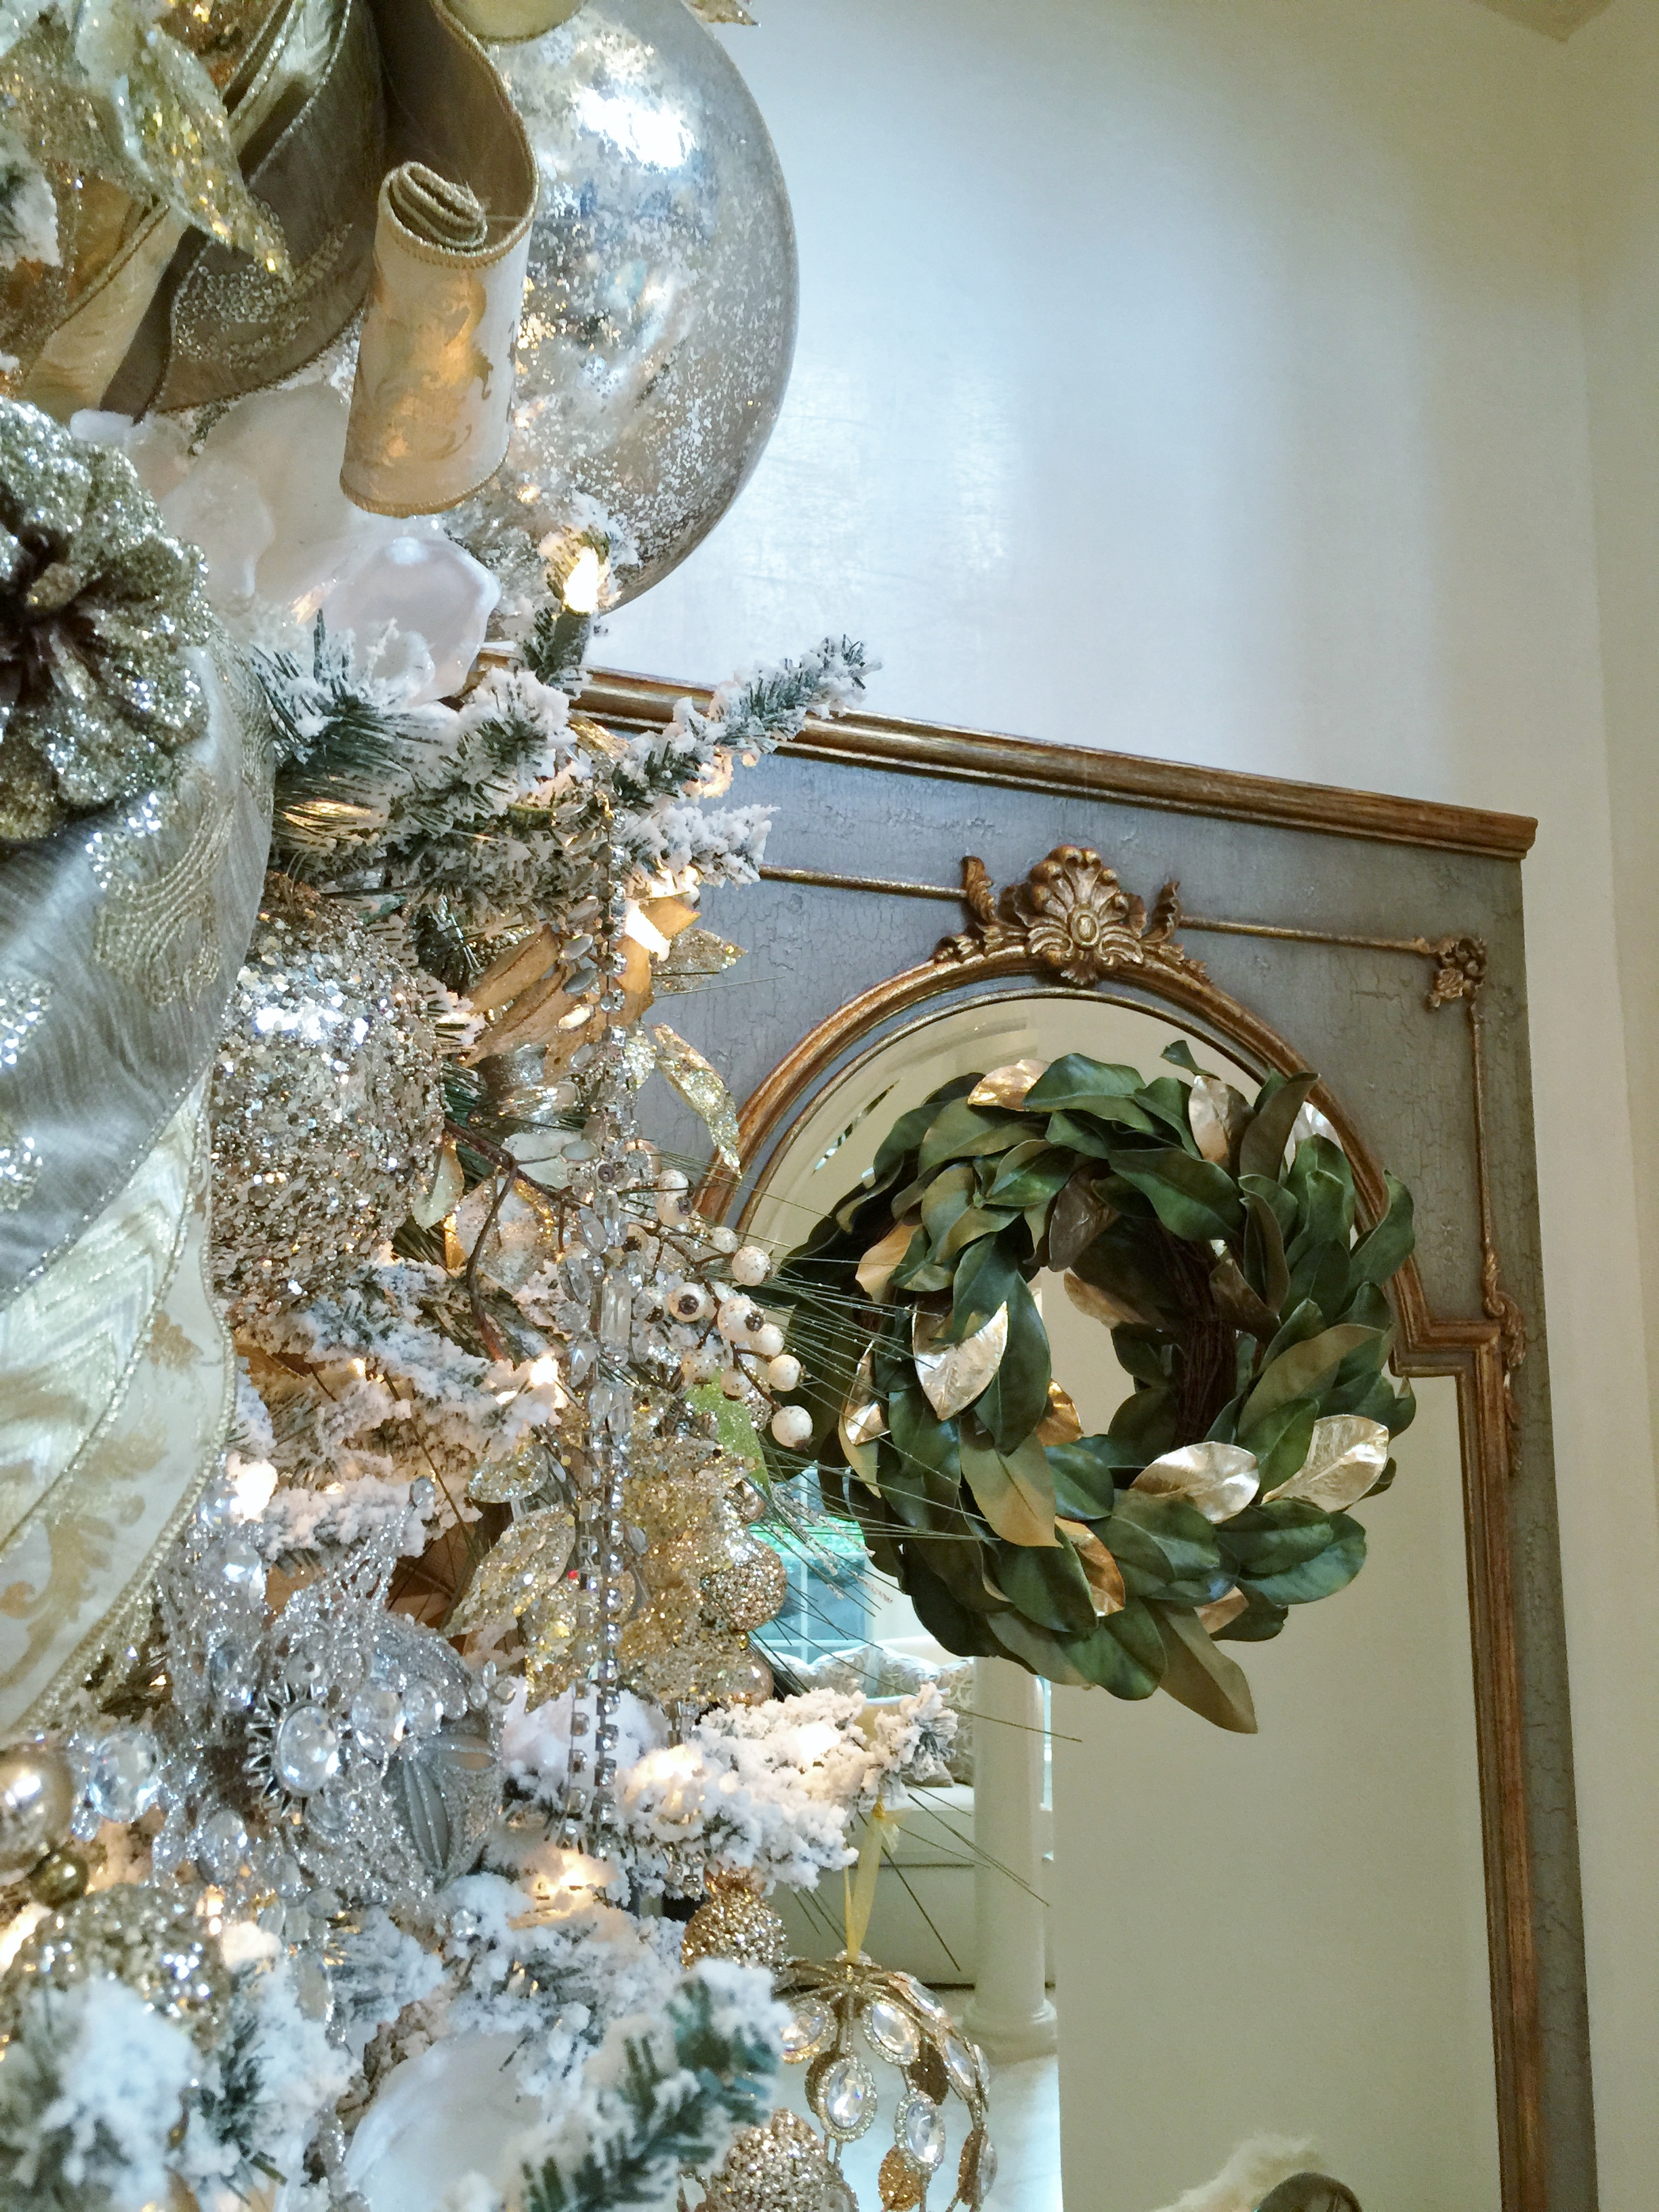 Holiday Showhouse, Entry hall Christmas tree and holiday decor - Designer: Woodlands Fabrics and Interiors #christmastree #wreath #christmasdecor